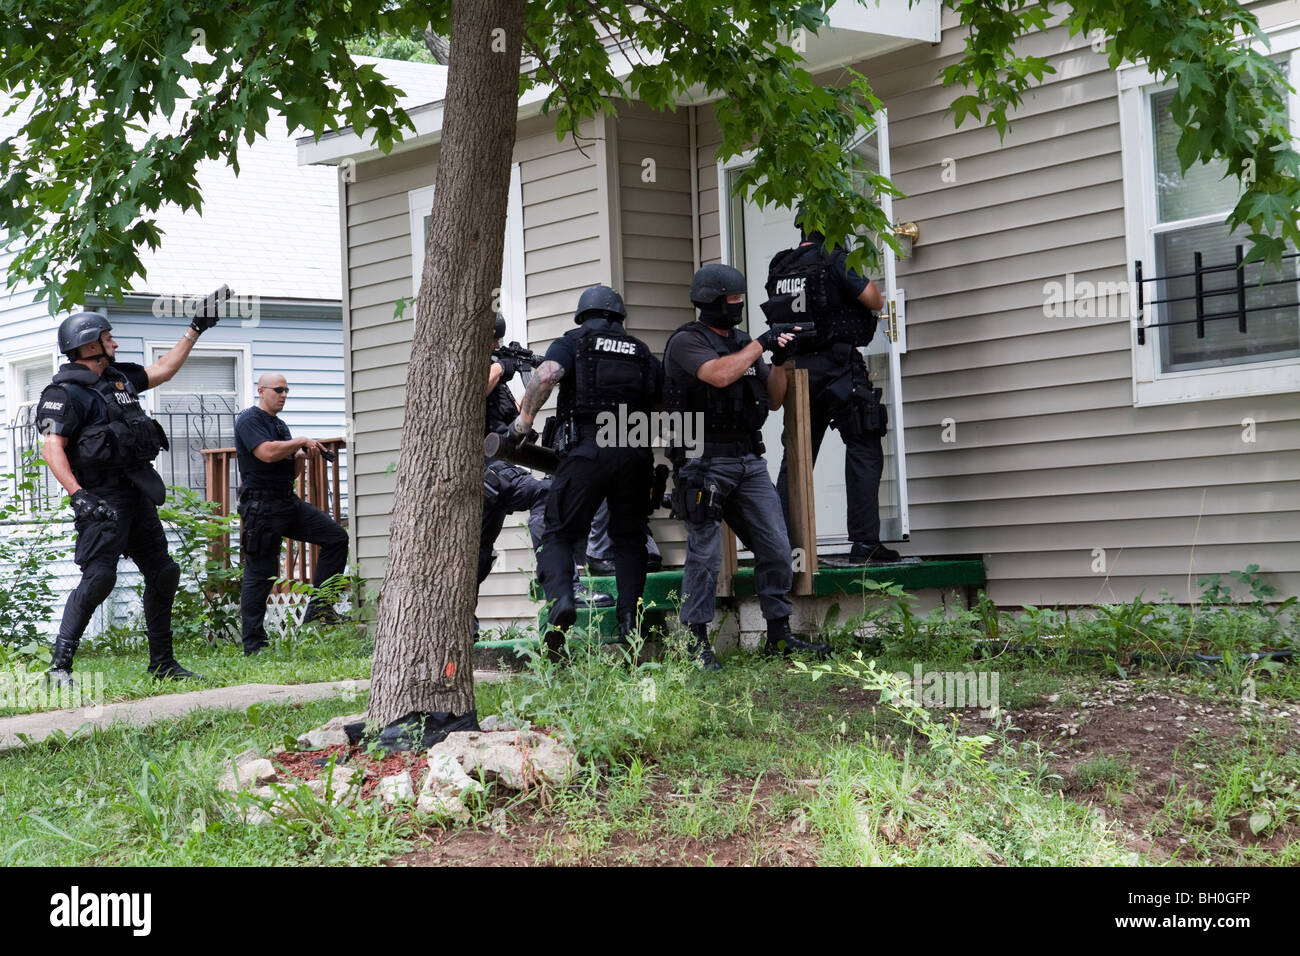 Police from tactical team making entry to serve a high-risk drug related search warrant. Street Narcotics Unit. - Stock Image